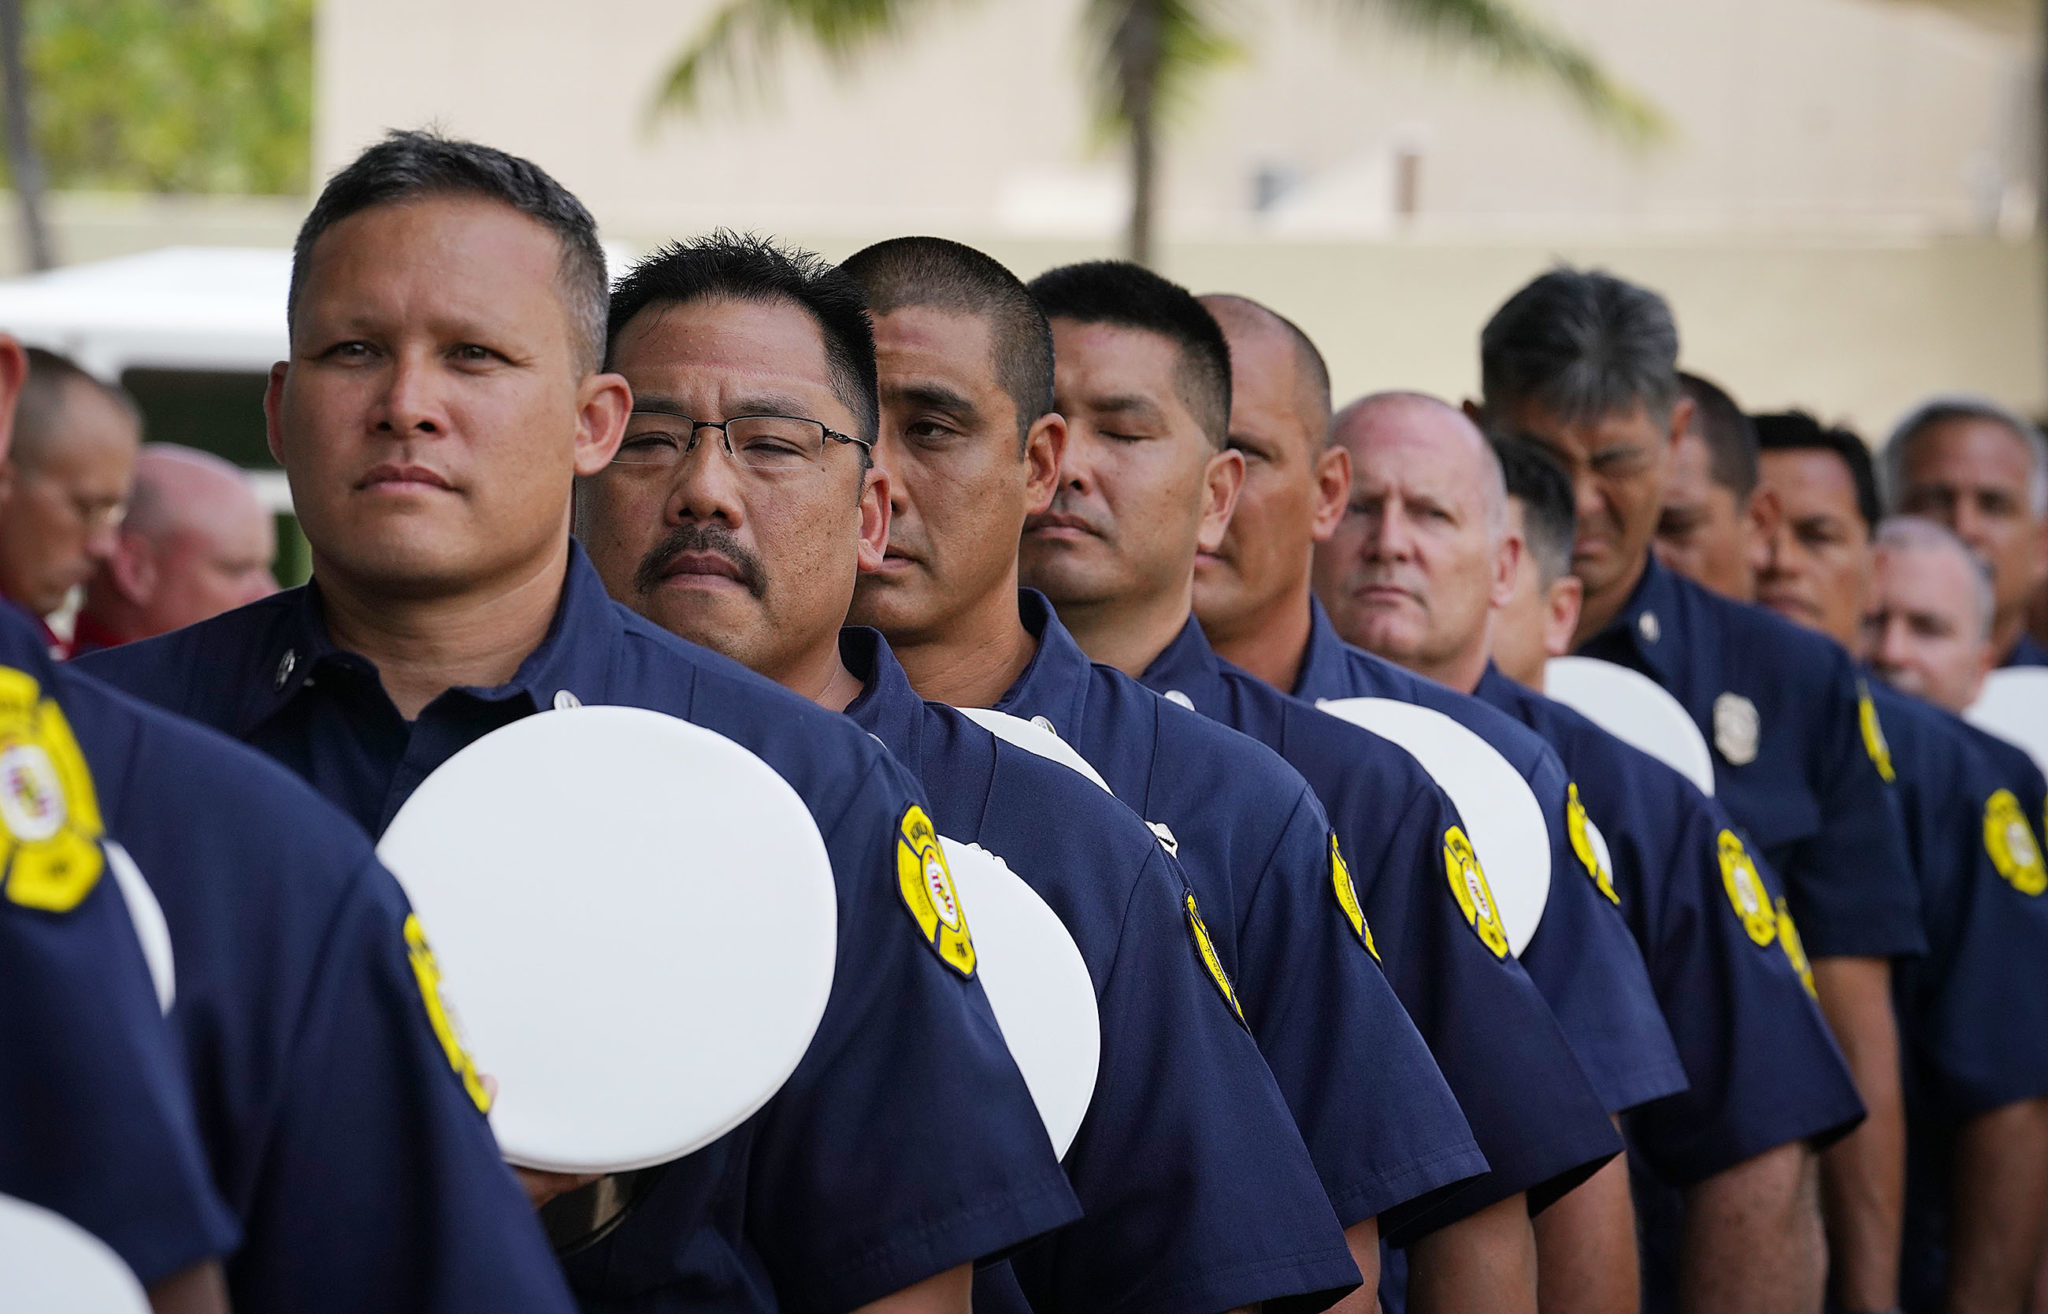 <p>Honolulu firefighters approach the sculpture in a pass-and-review gesture of respect. Kamehameha III founded the fire department in 1850.</p>